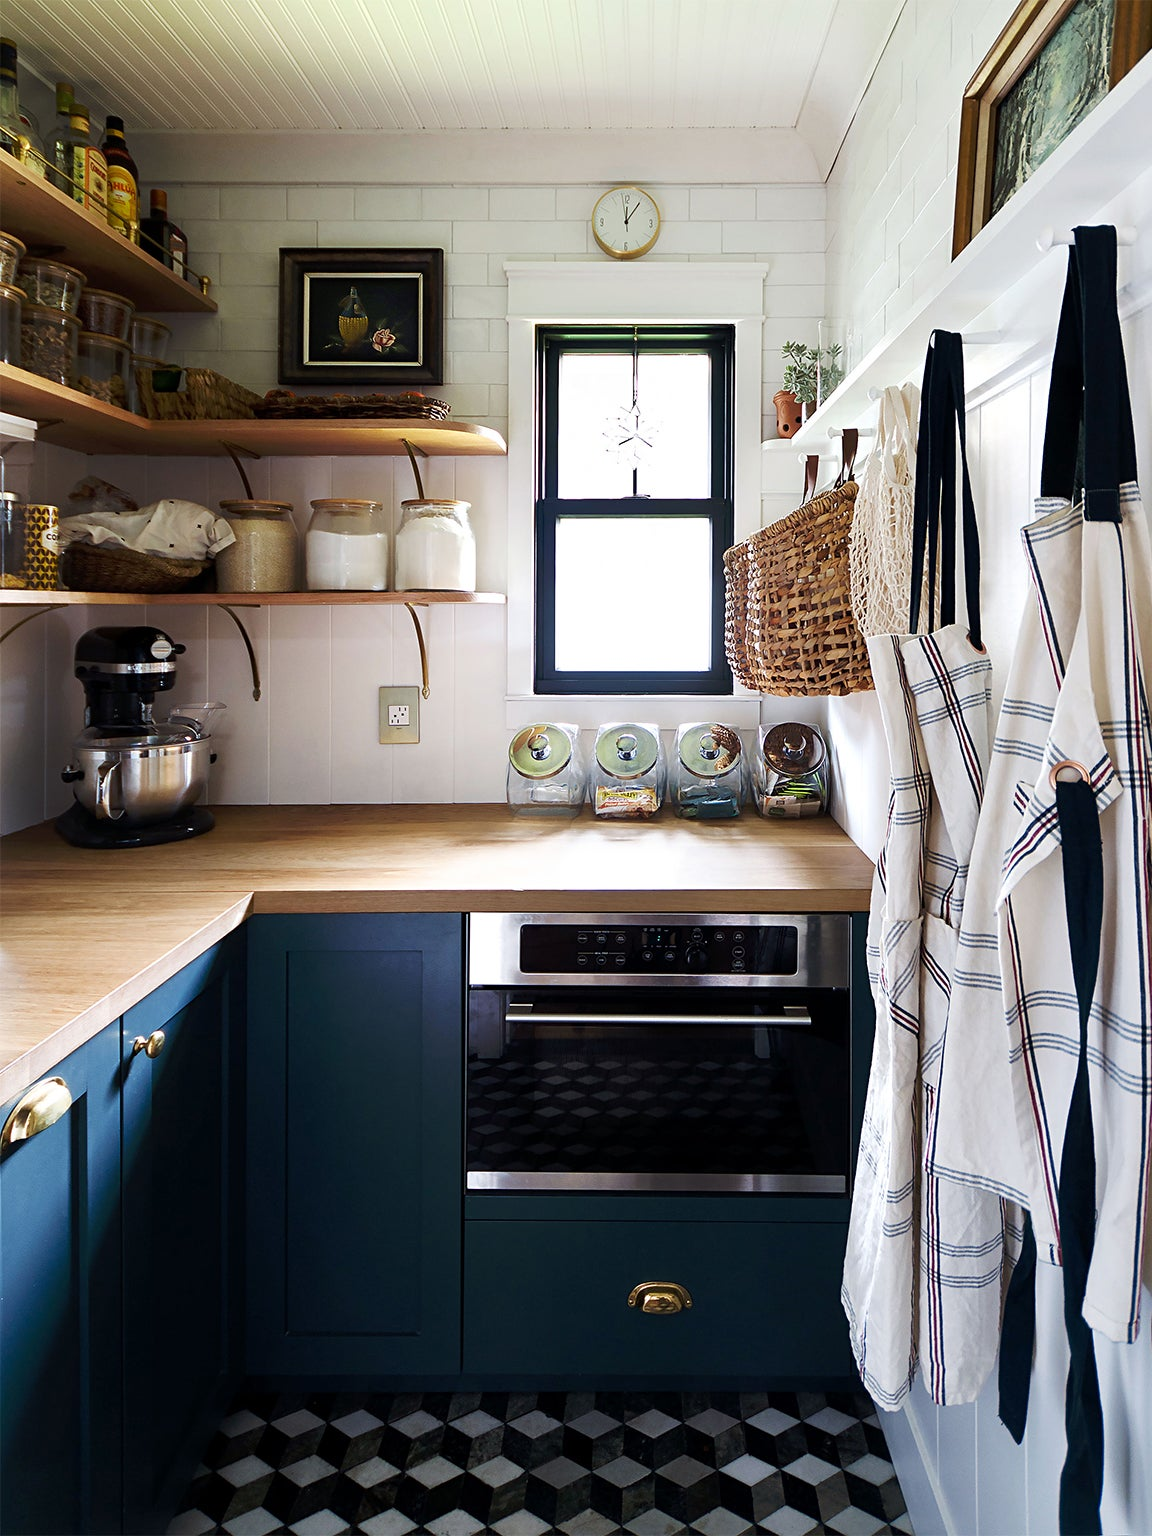 IKEA kitchen cabinets - small kitchen with window and blue cabinets